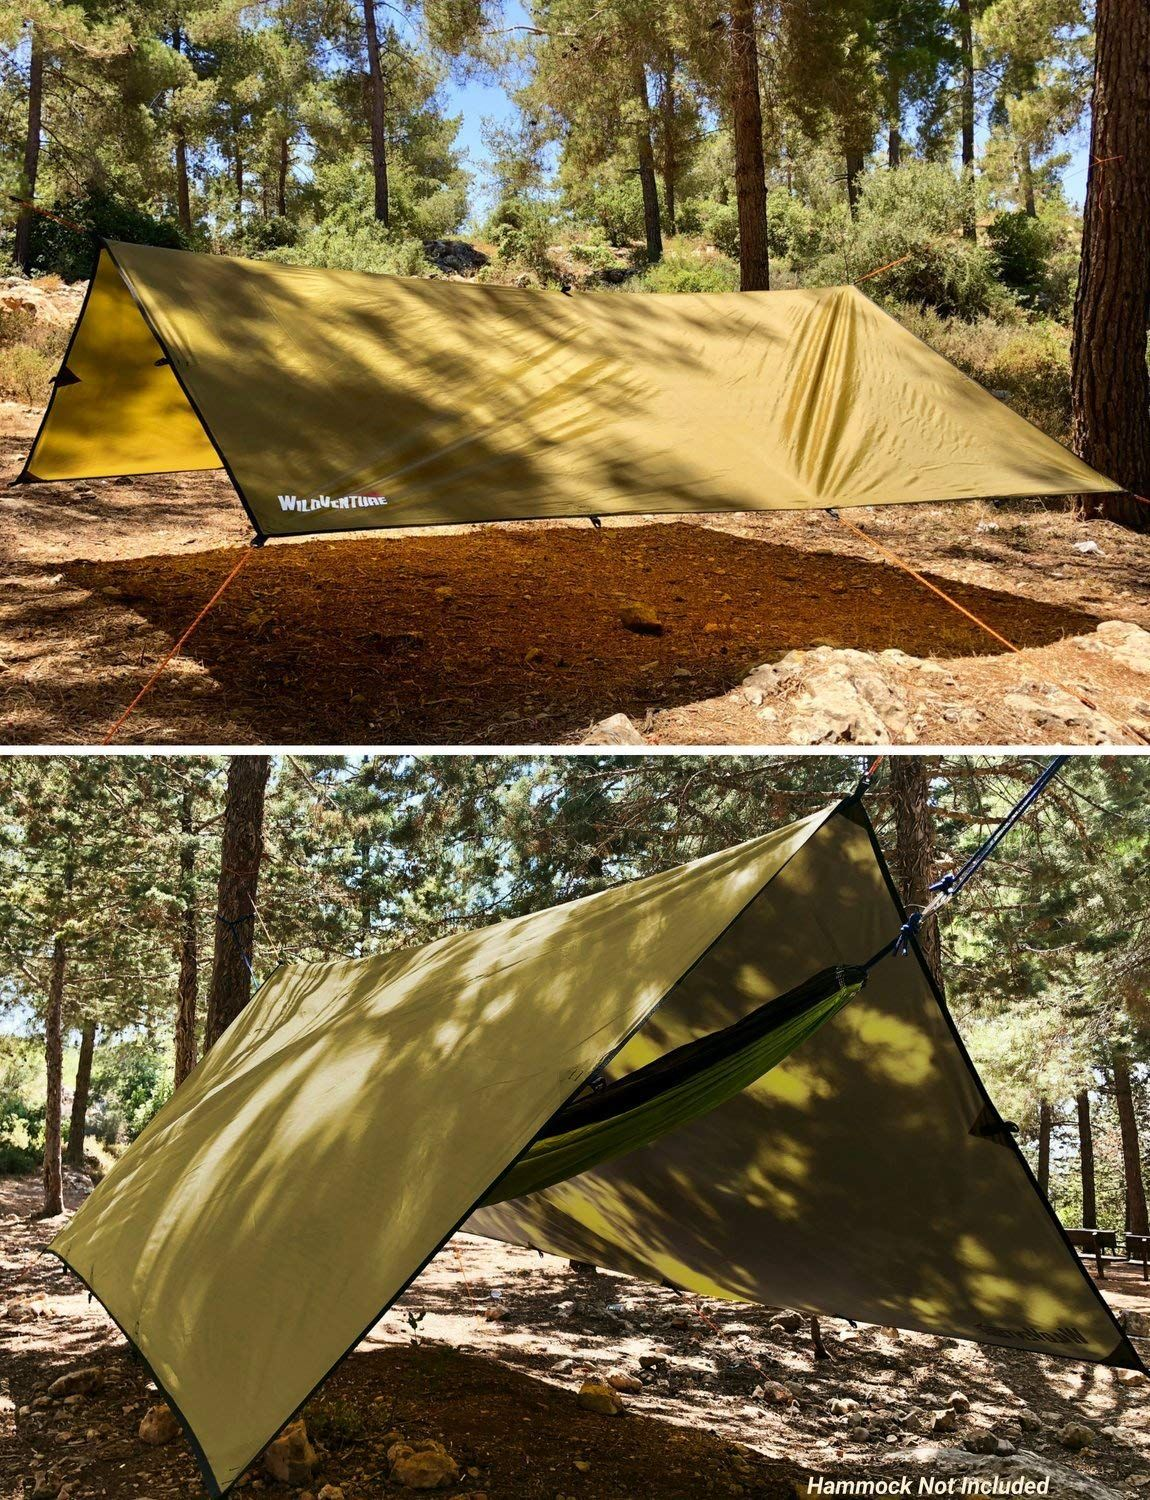 a06b3197e20 Amazon.com  WildVenture Tent Tarp Rain Fly - Waterproof Lightweight  Survival Gear Shelter for Camping